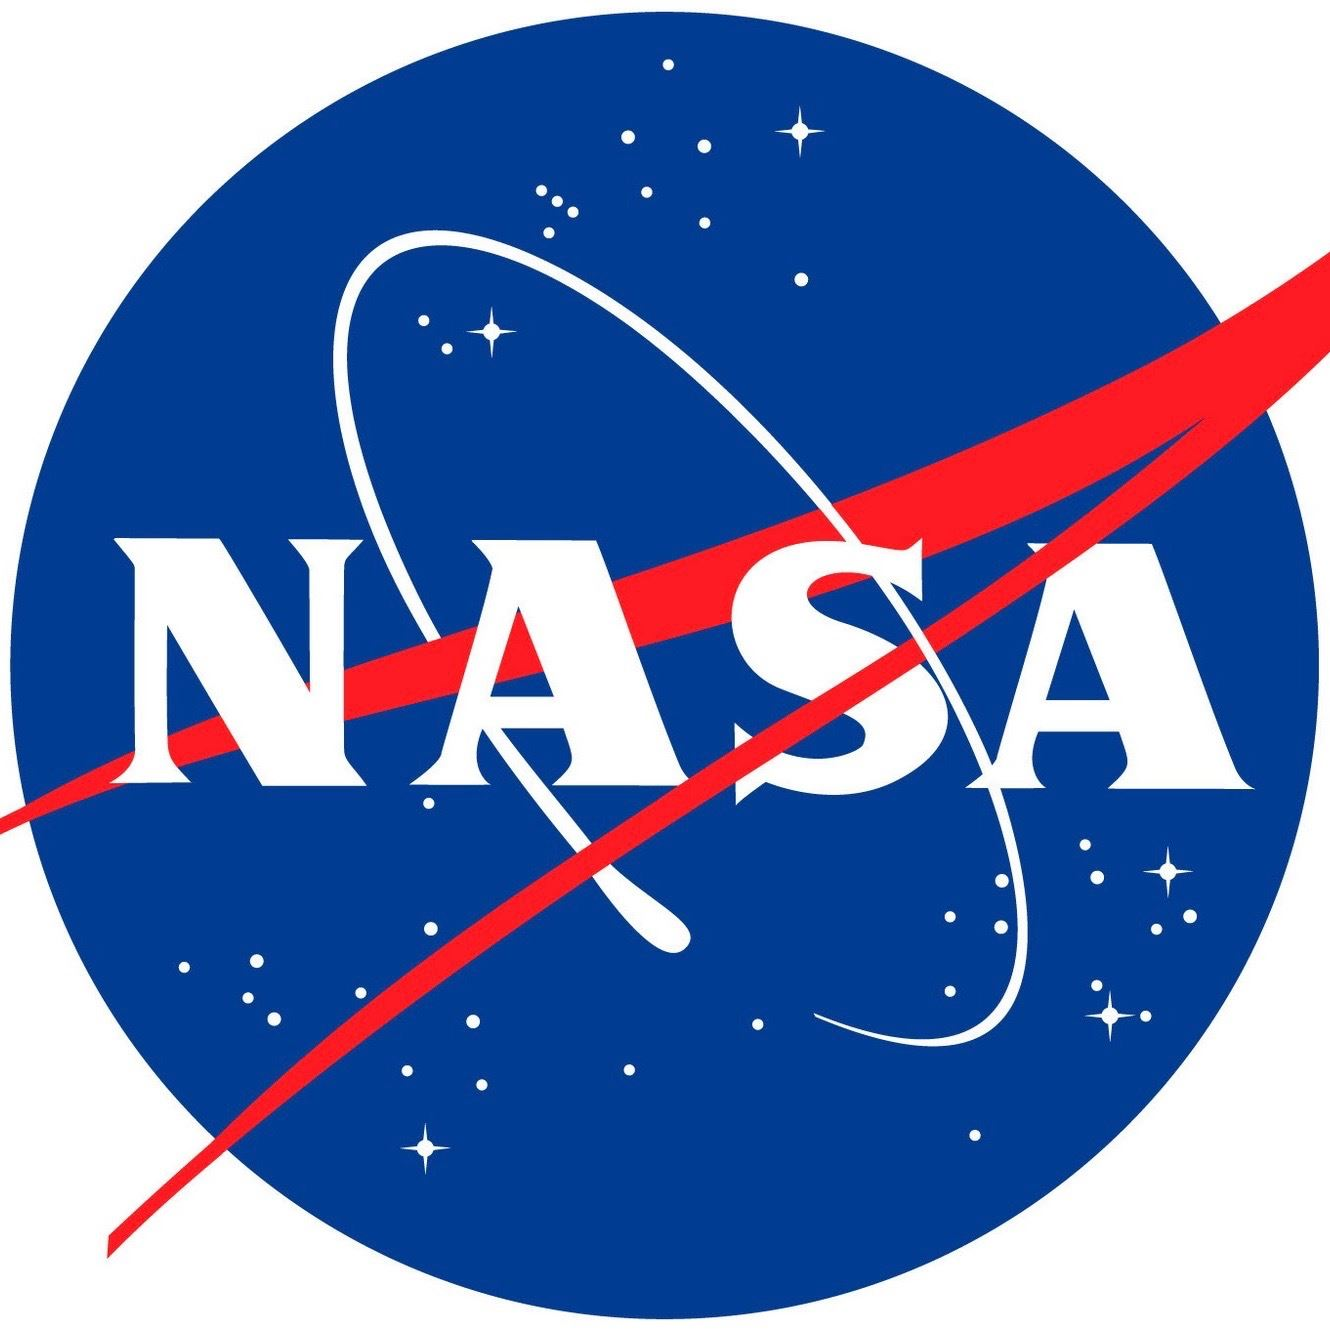 new nasa logo (1)